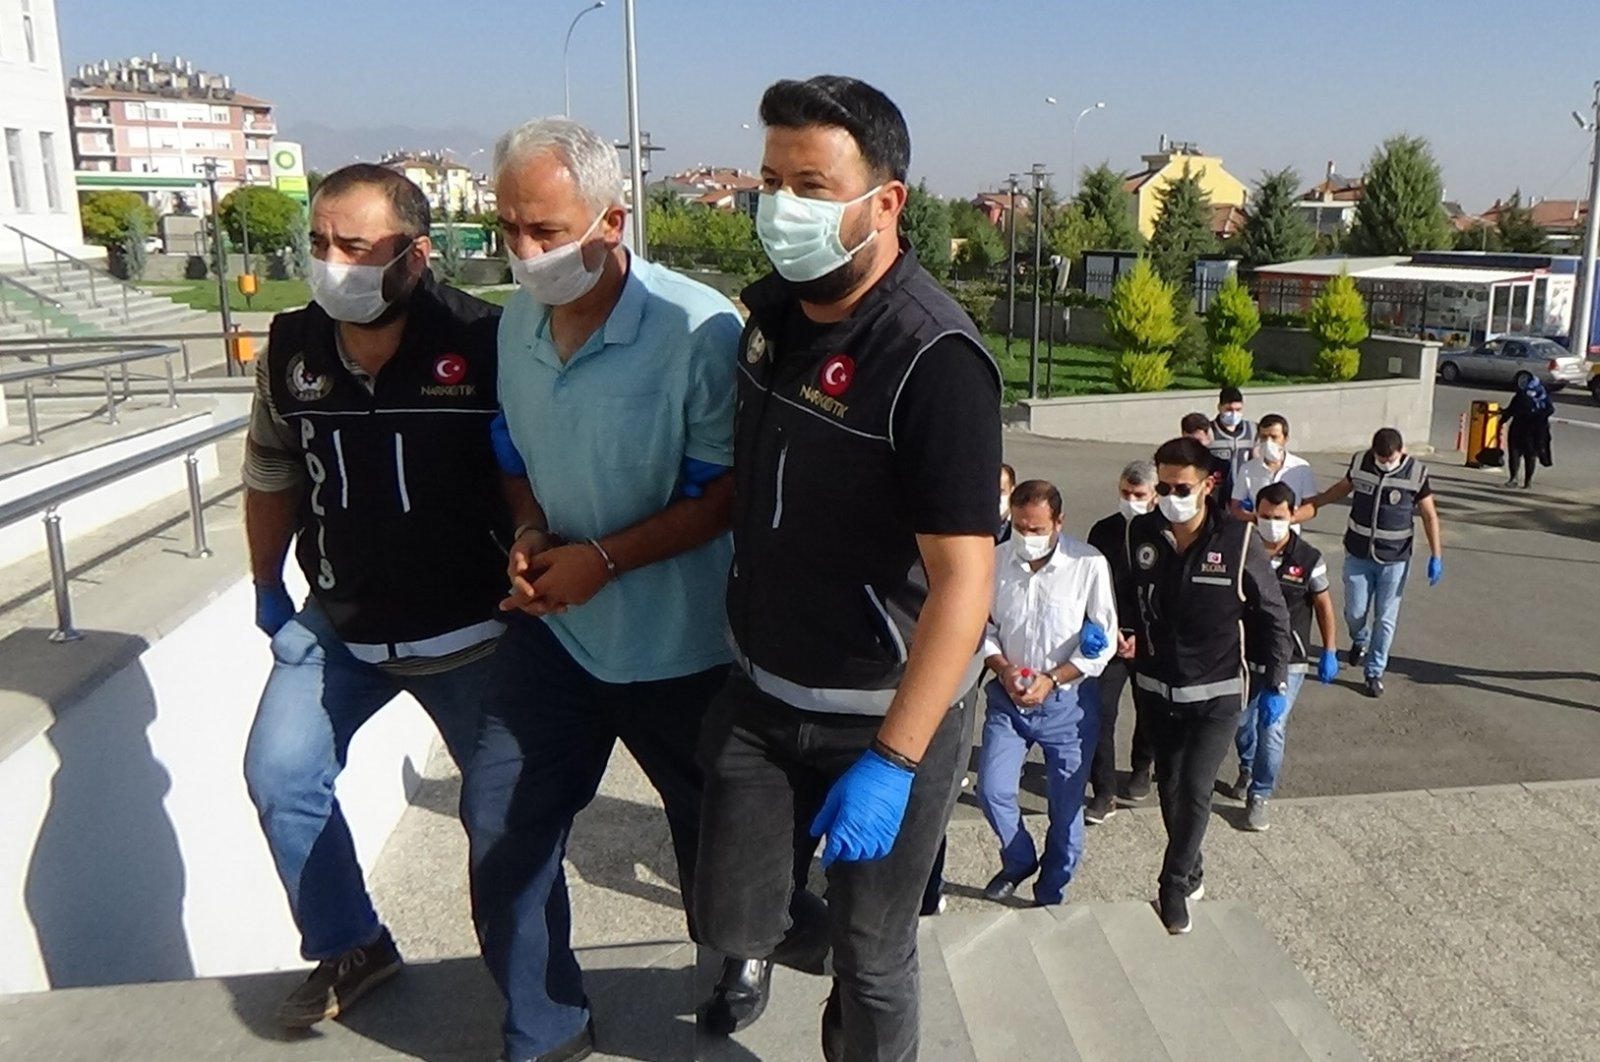 Police escort FETÖ suspects captured in an operation to the courthouse, in Karaman, central Turkey, Sept. 30, 2020. (IHA Photo)